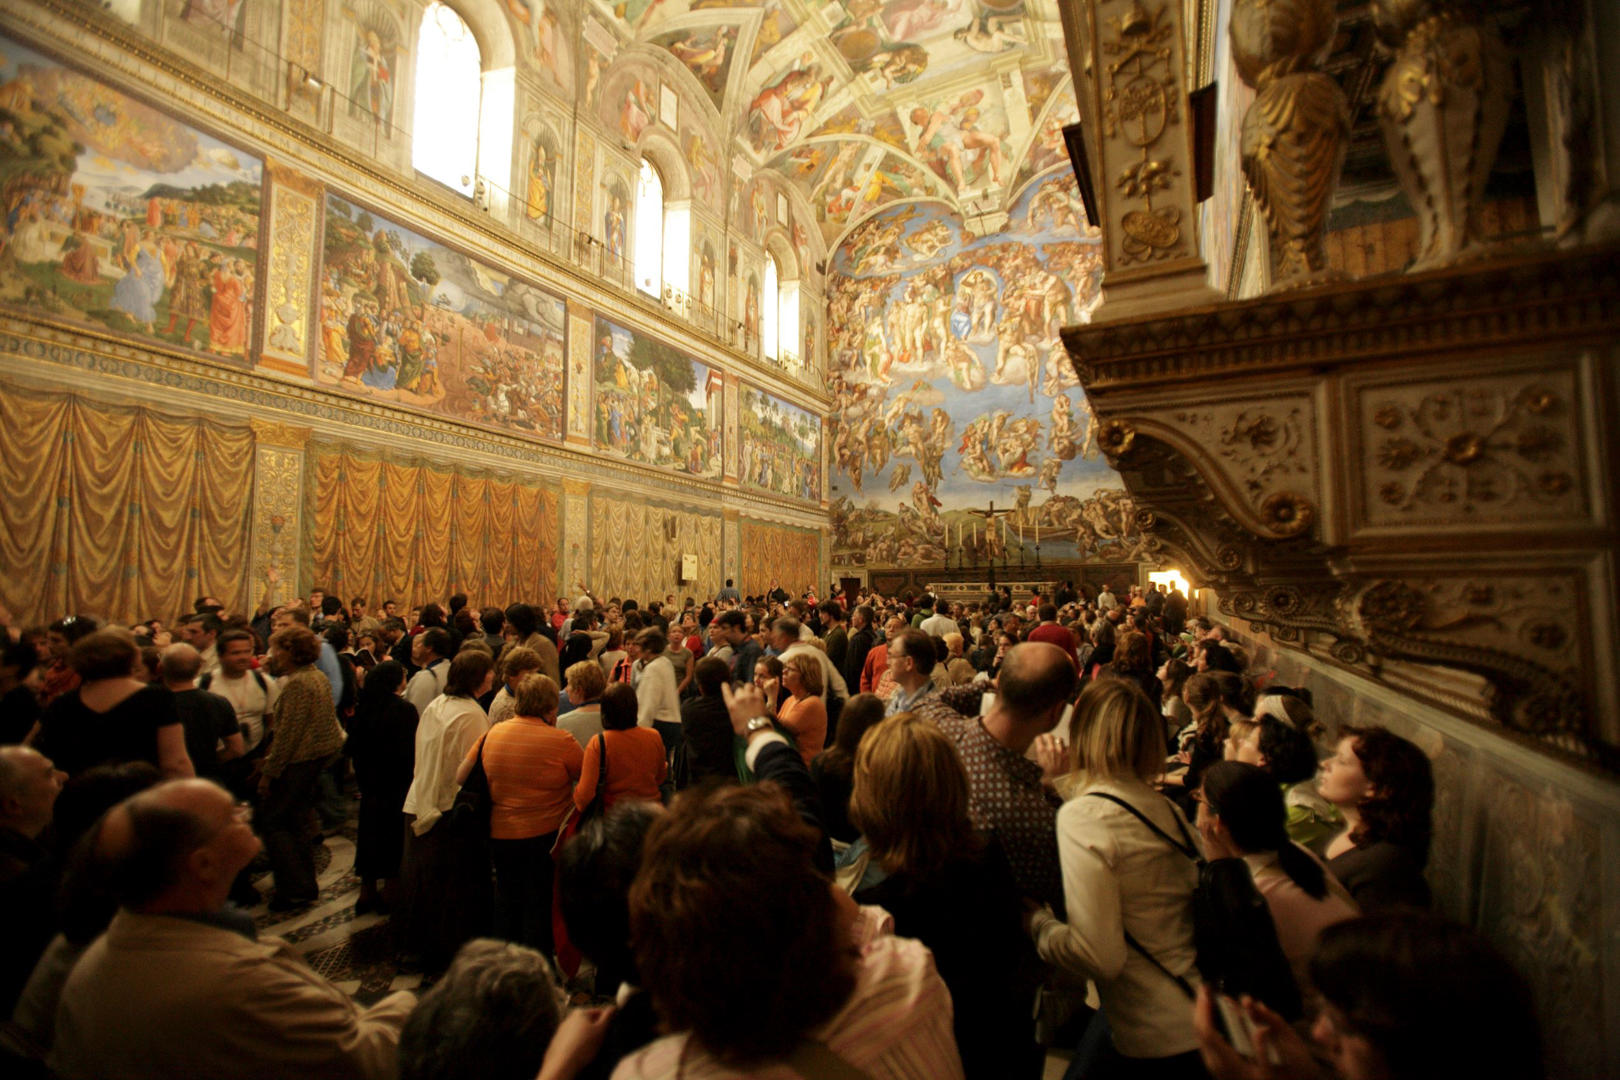 Slide 8 of 9: Crowd Touring the Sistine Chapel